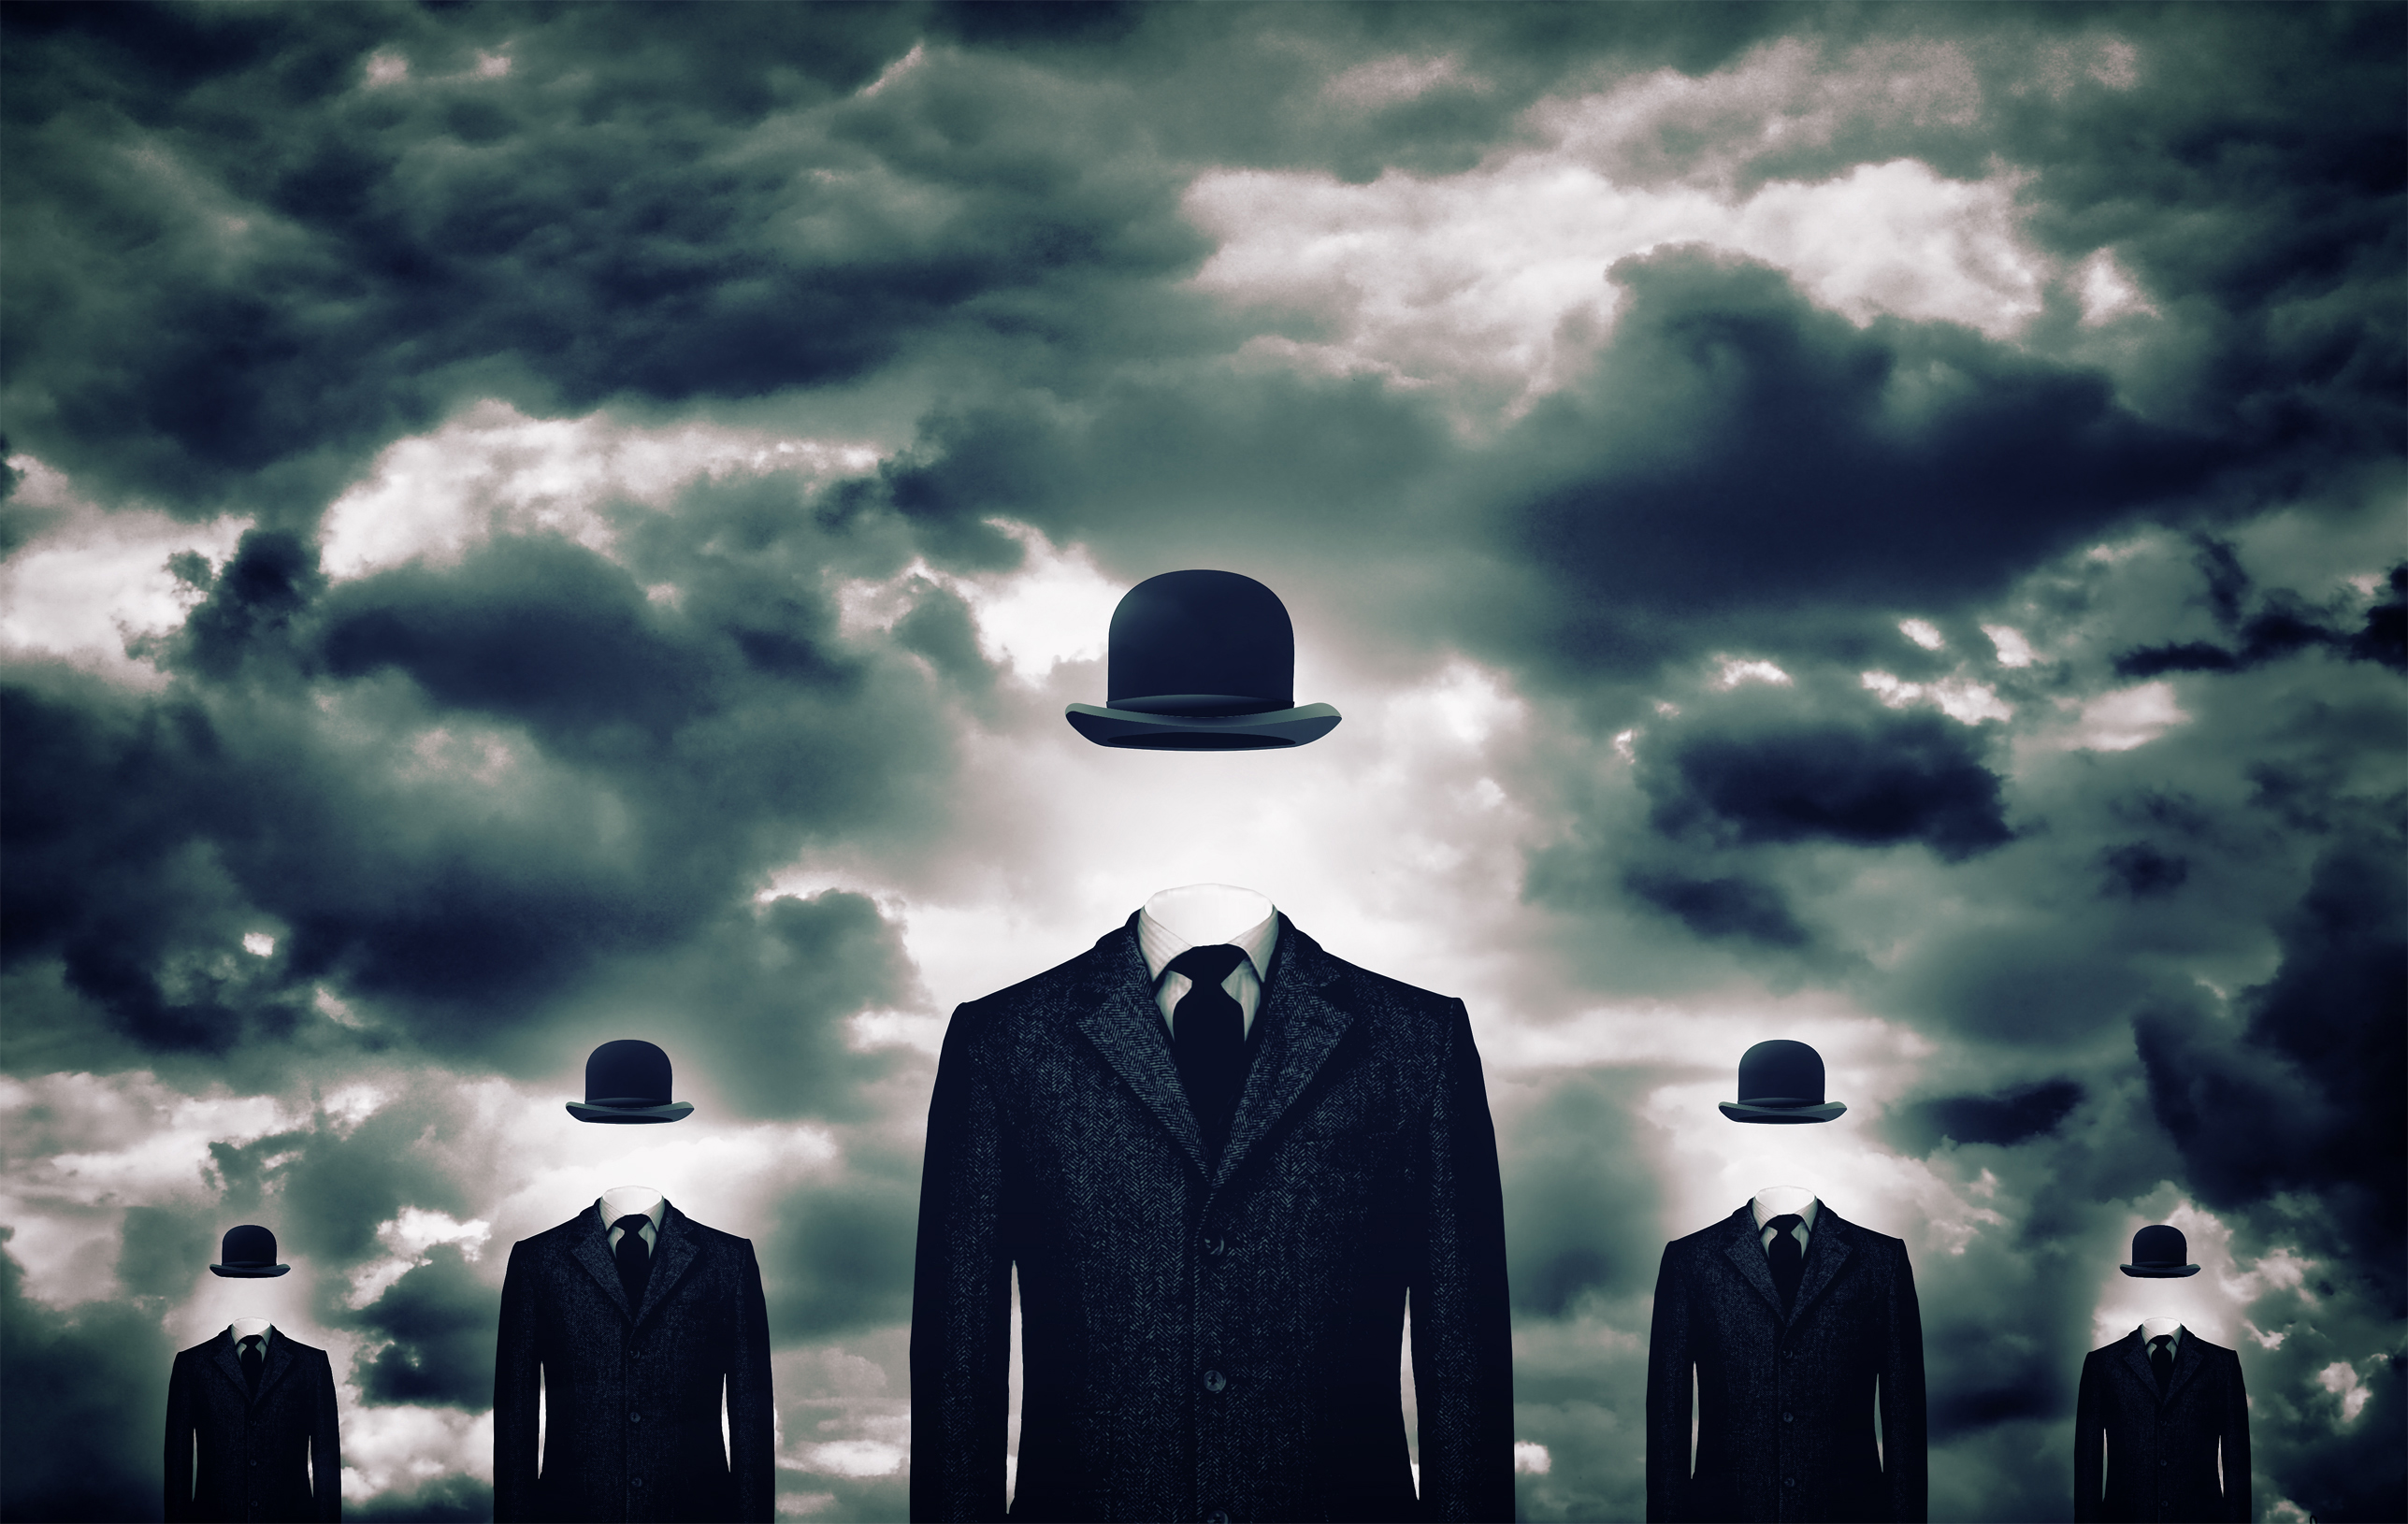 Anonymous businessmen with bowler hats, Accessories, Menacing, Plus, Person, HQ Photo